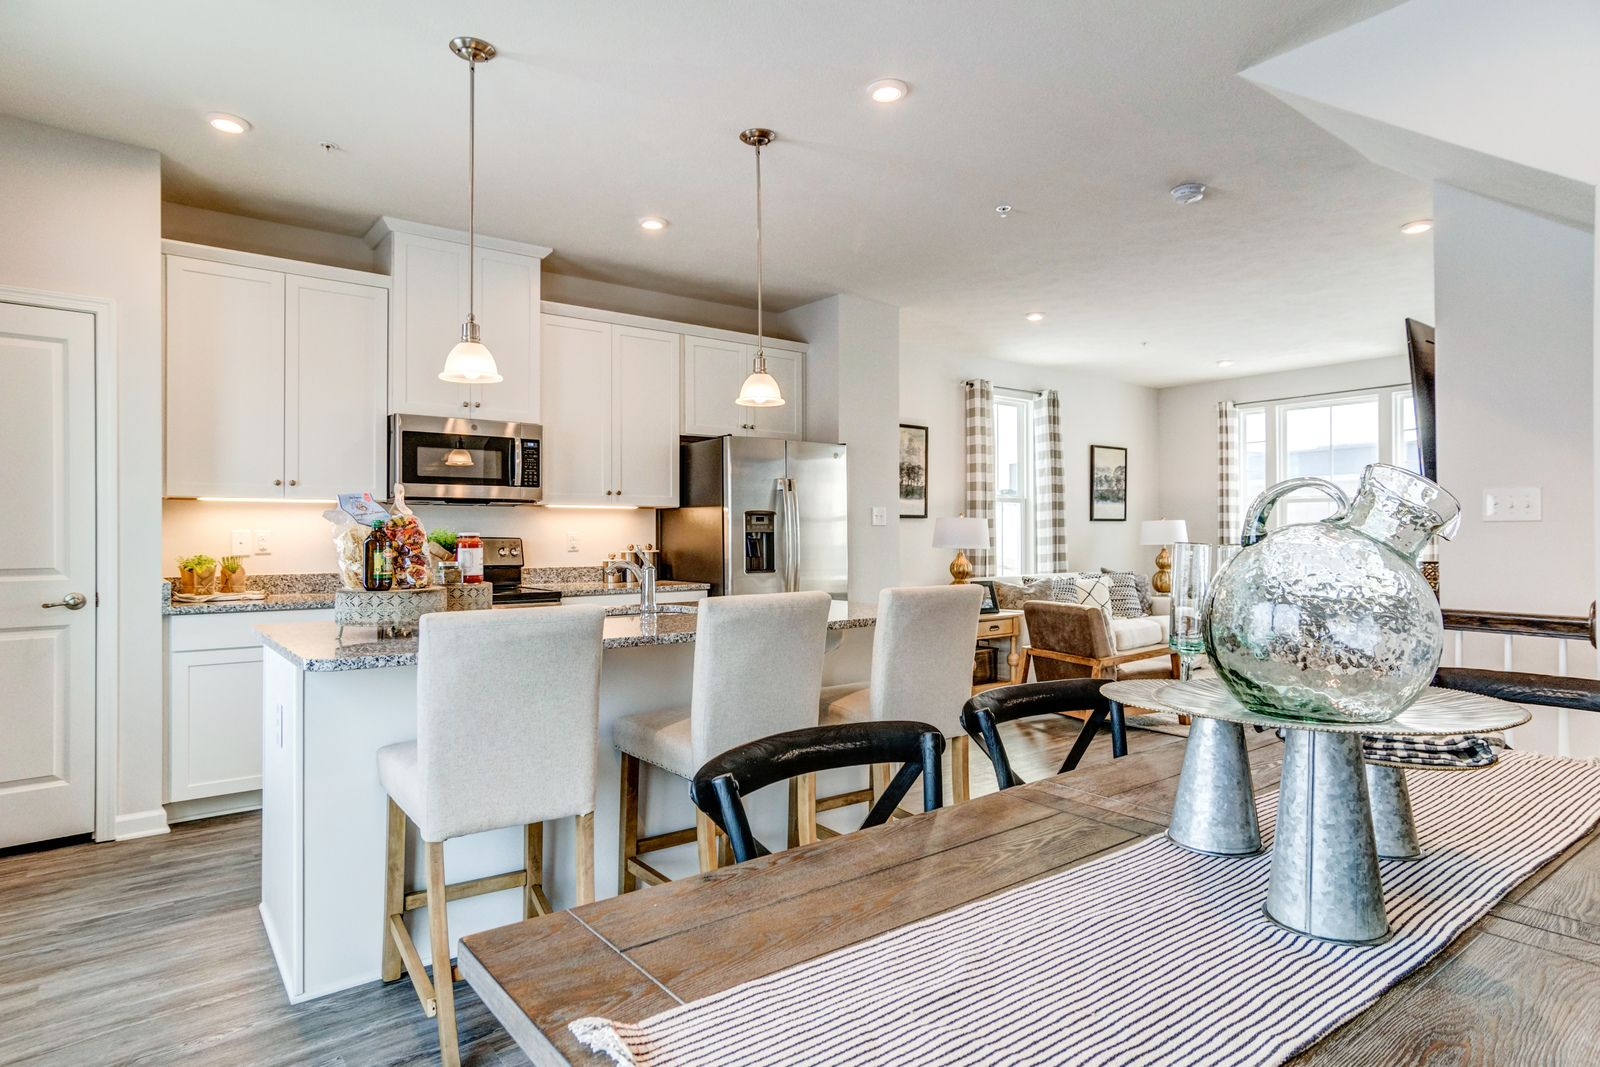 Living Area featured in the Beethoven By Ryan Homes in Washington, MD